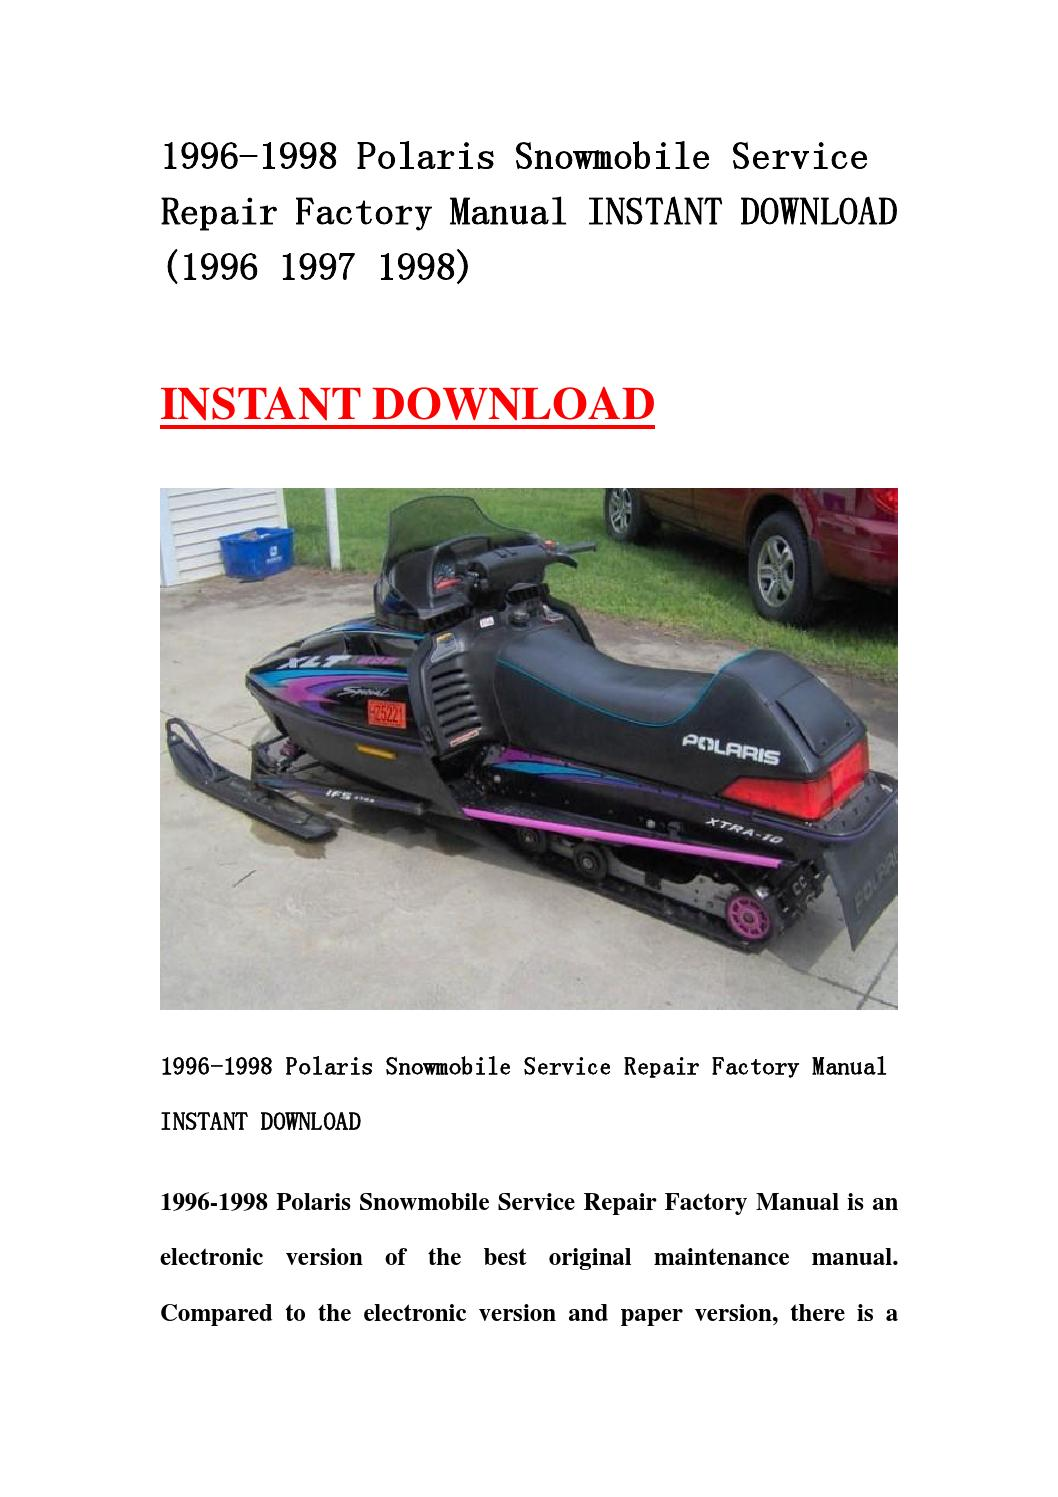 1996 1998 Polaris Snowmobile Service Repair Factory Manual Instant Download  1996 1997 1998  By